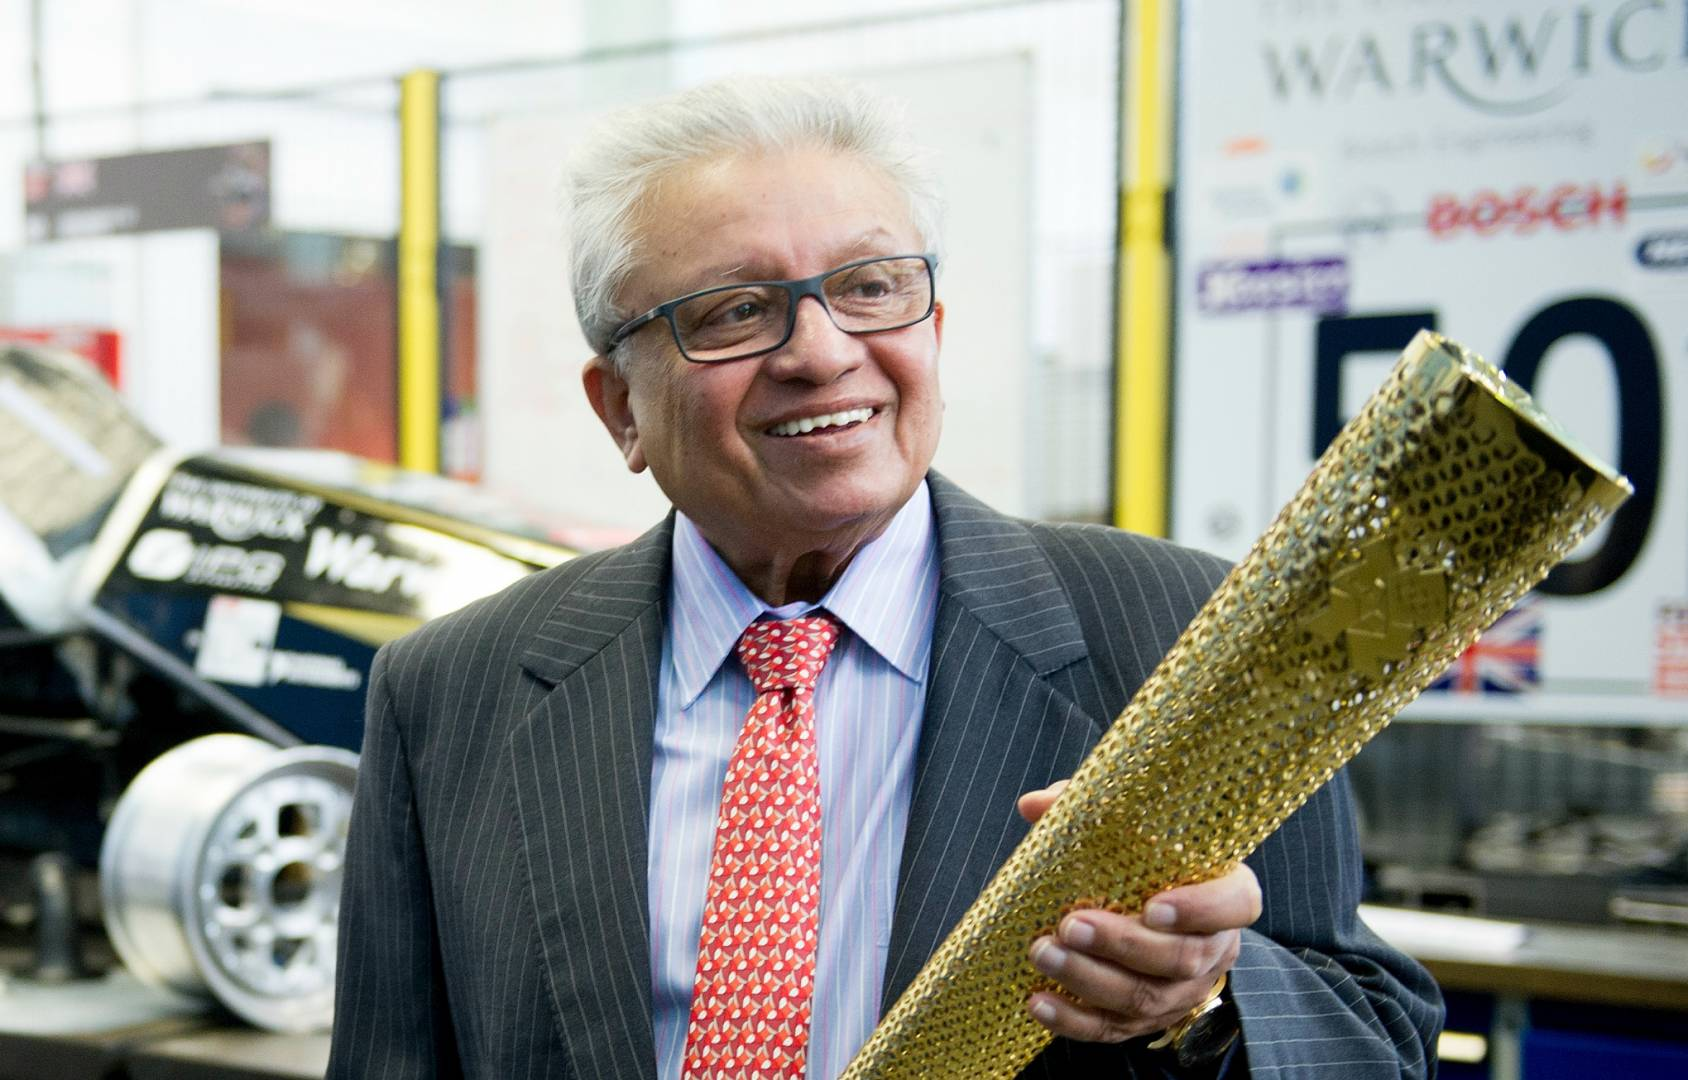 Professor Lord Bhattacharyya WEB